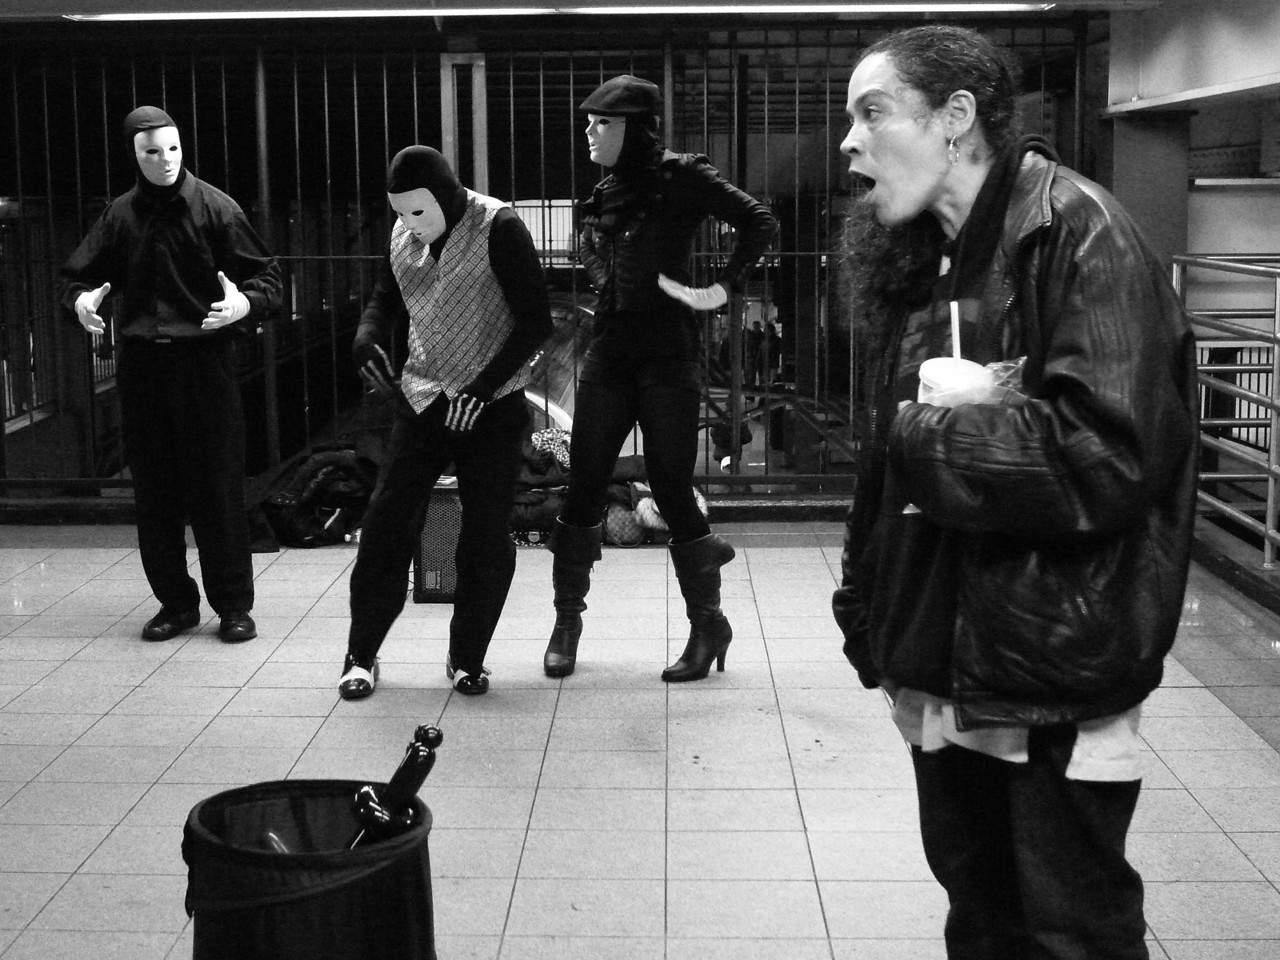 SUBWAY MIMES AND AUDIENCE